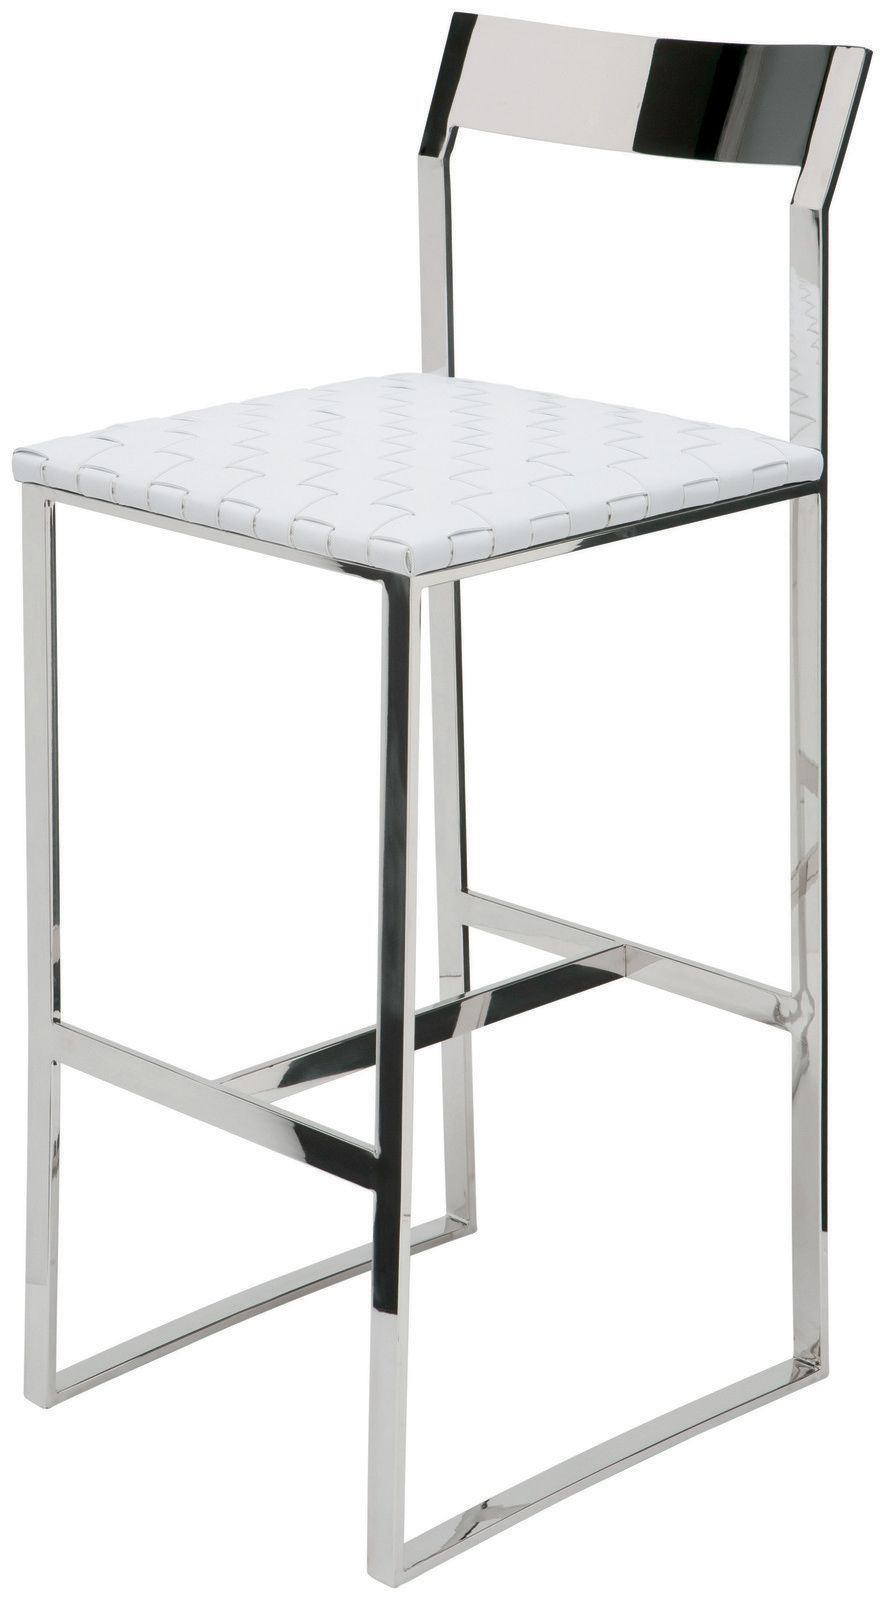 Camille Stainless Steel Bar Stool in White Leather by Nuevo HGDJ